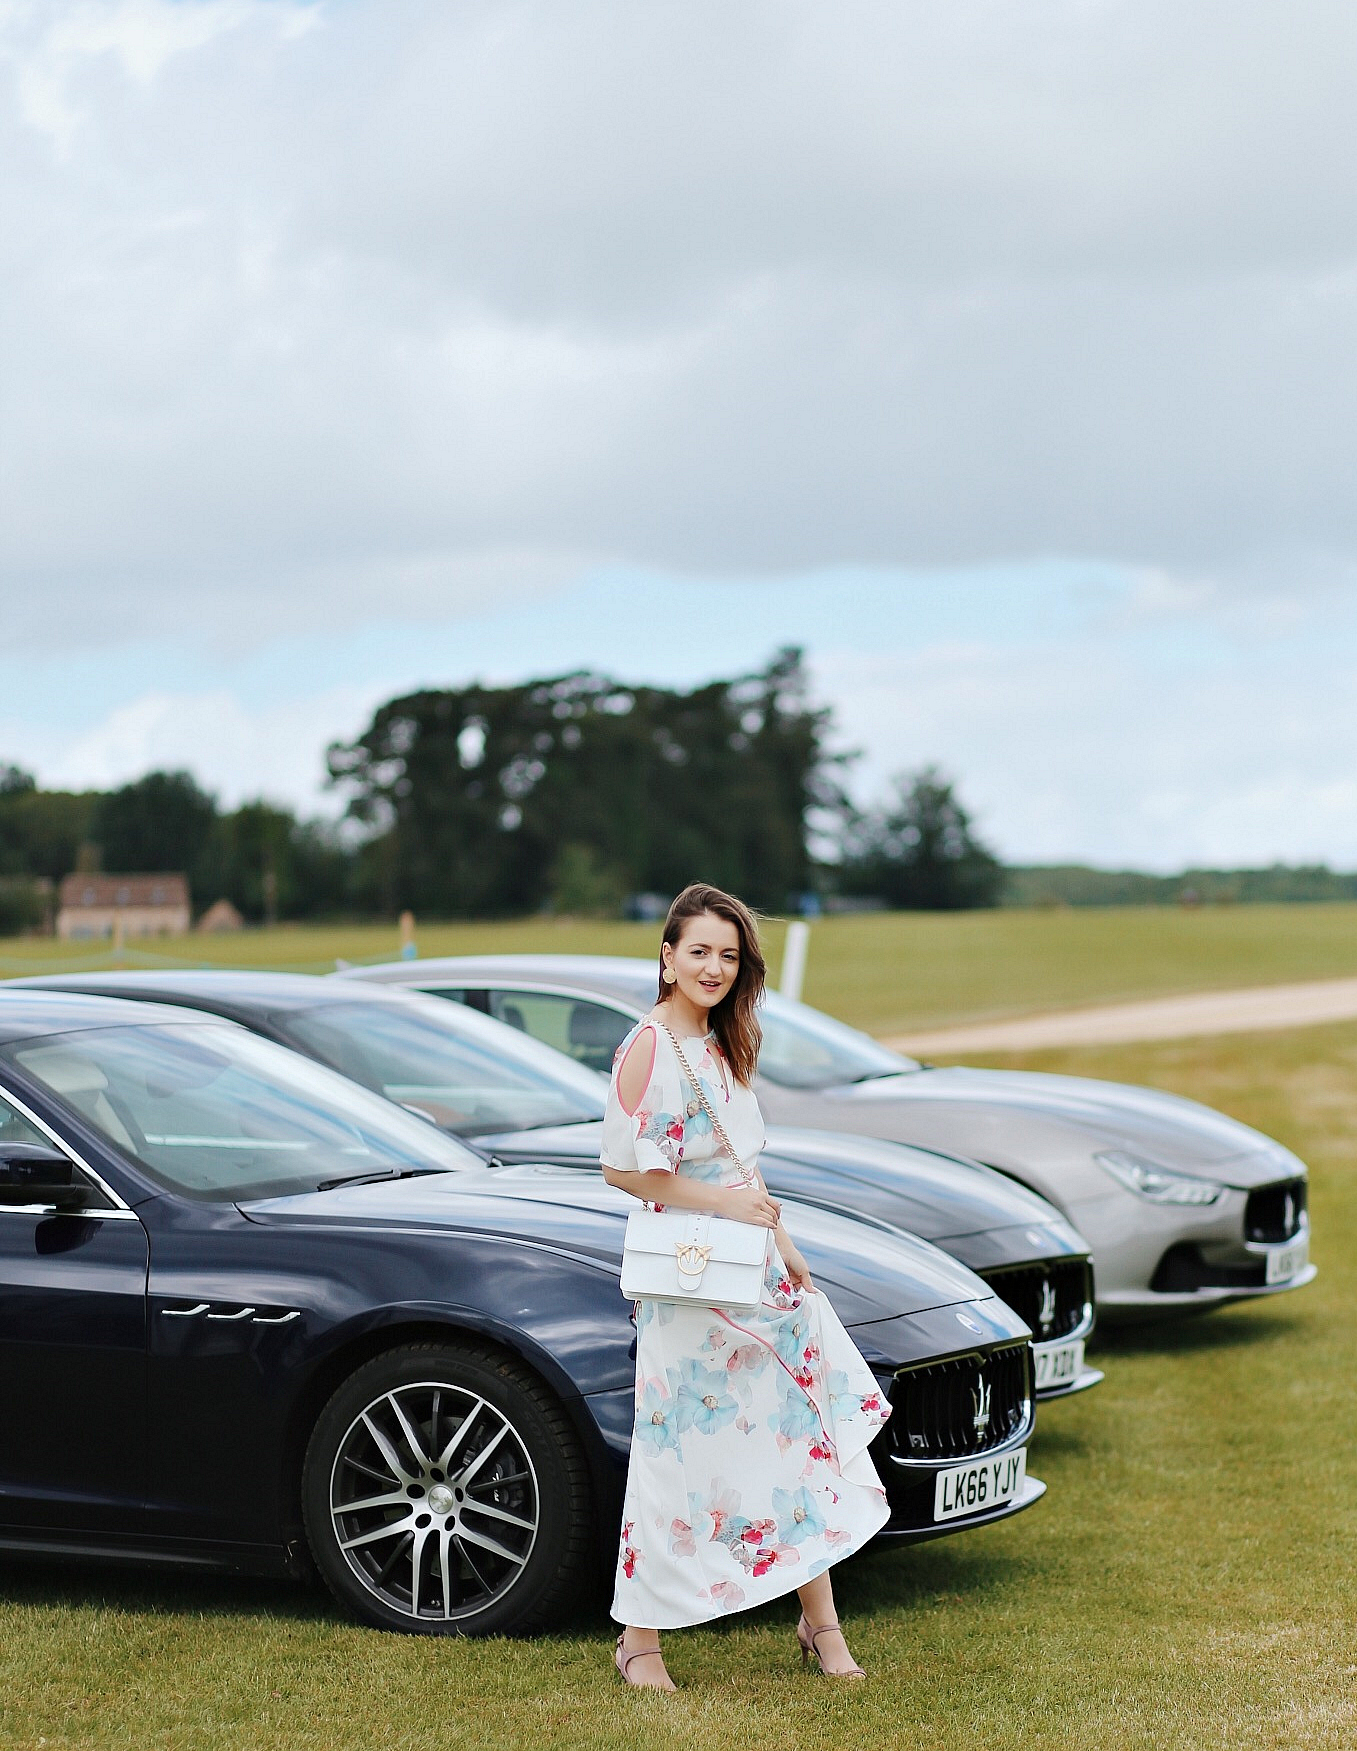 Attending the Maserati Royal Charity Polo Trophy